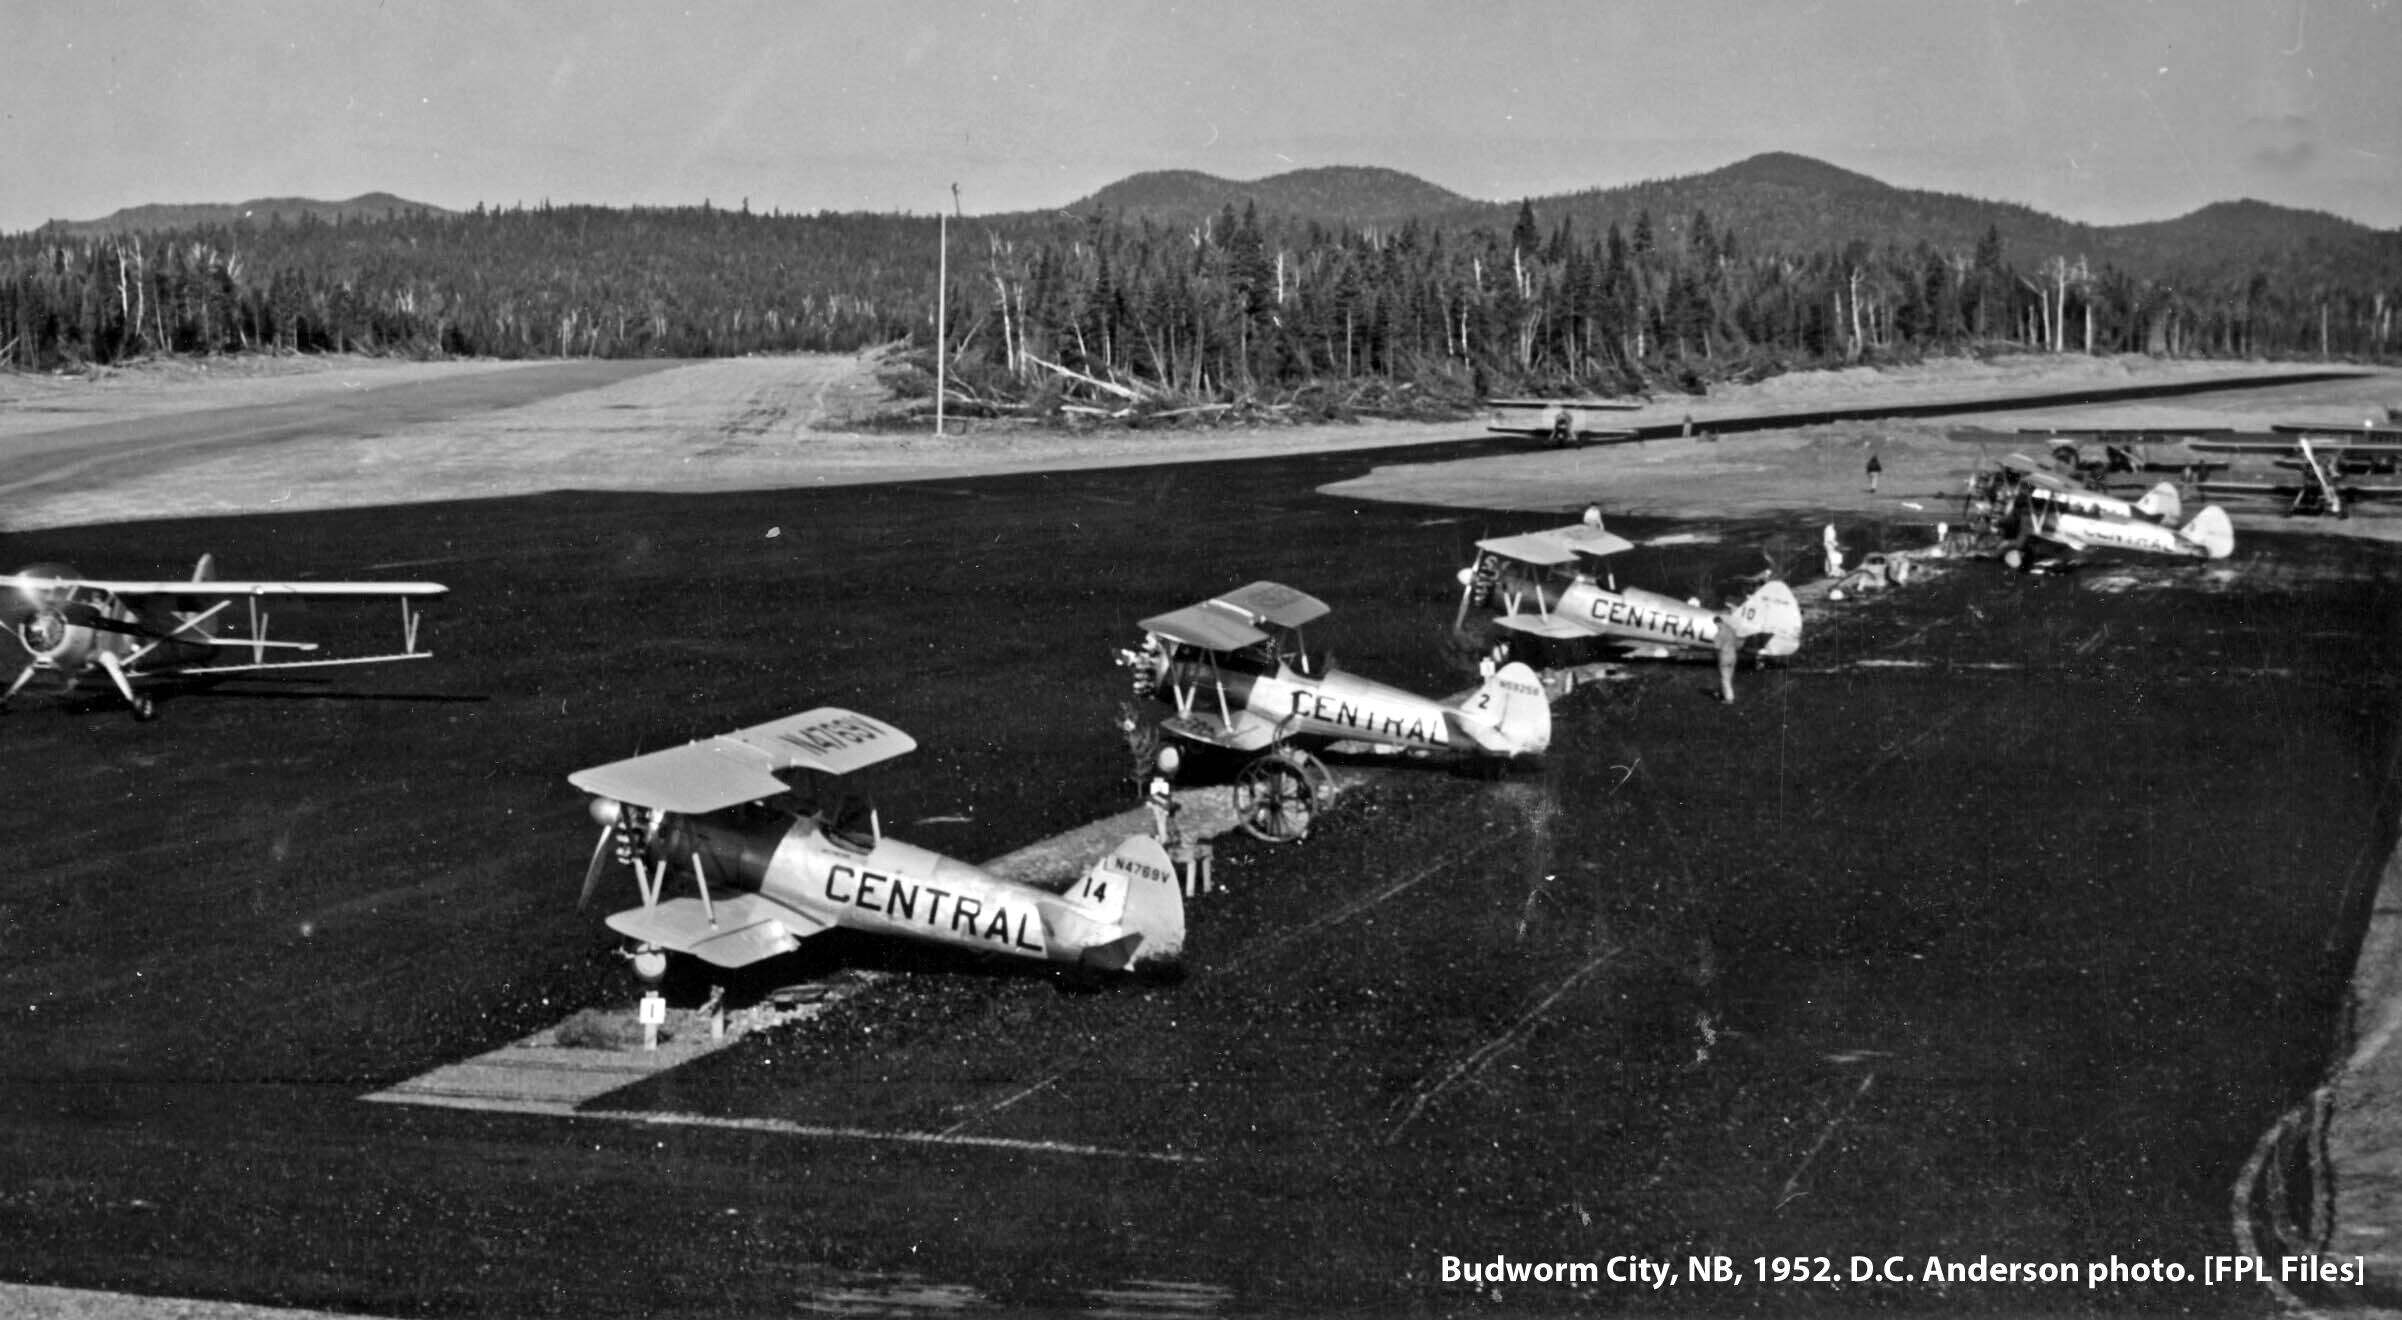 Stearmans at Budworm City, NB, 1952. D.C. Anderson photo.